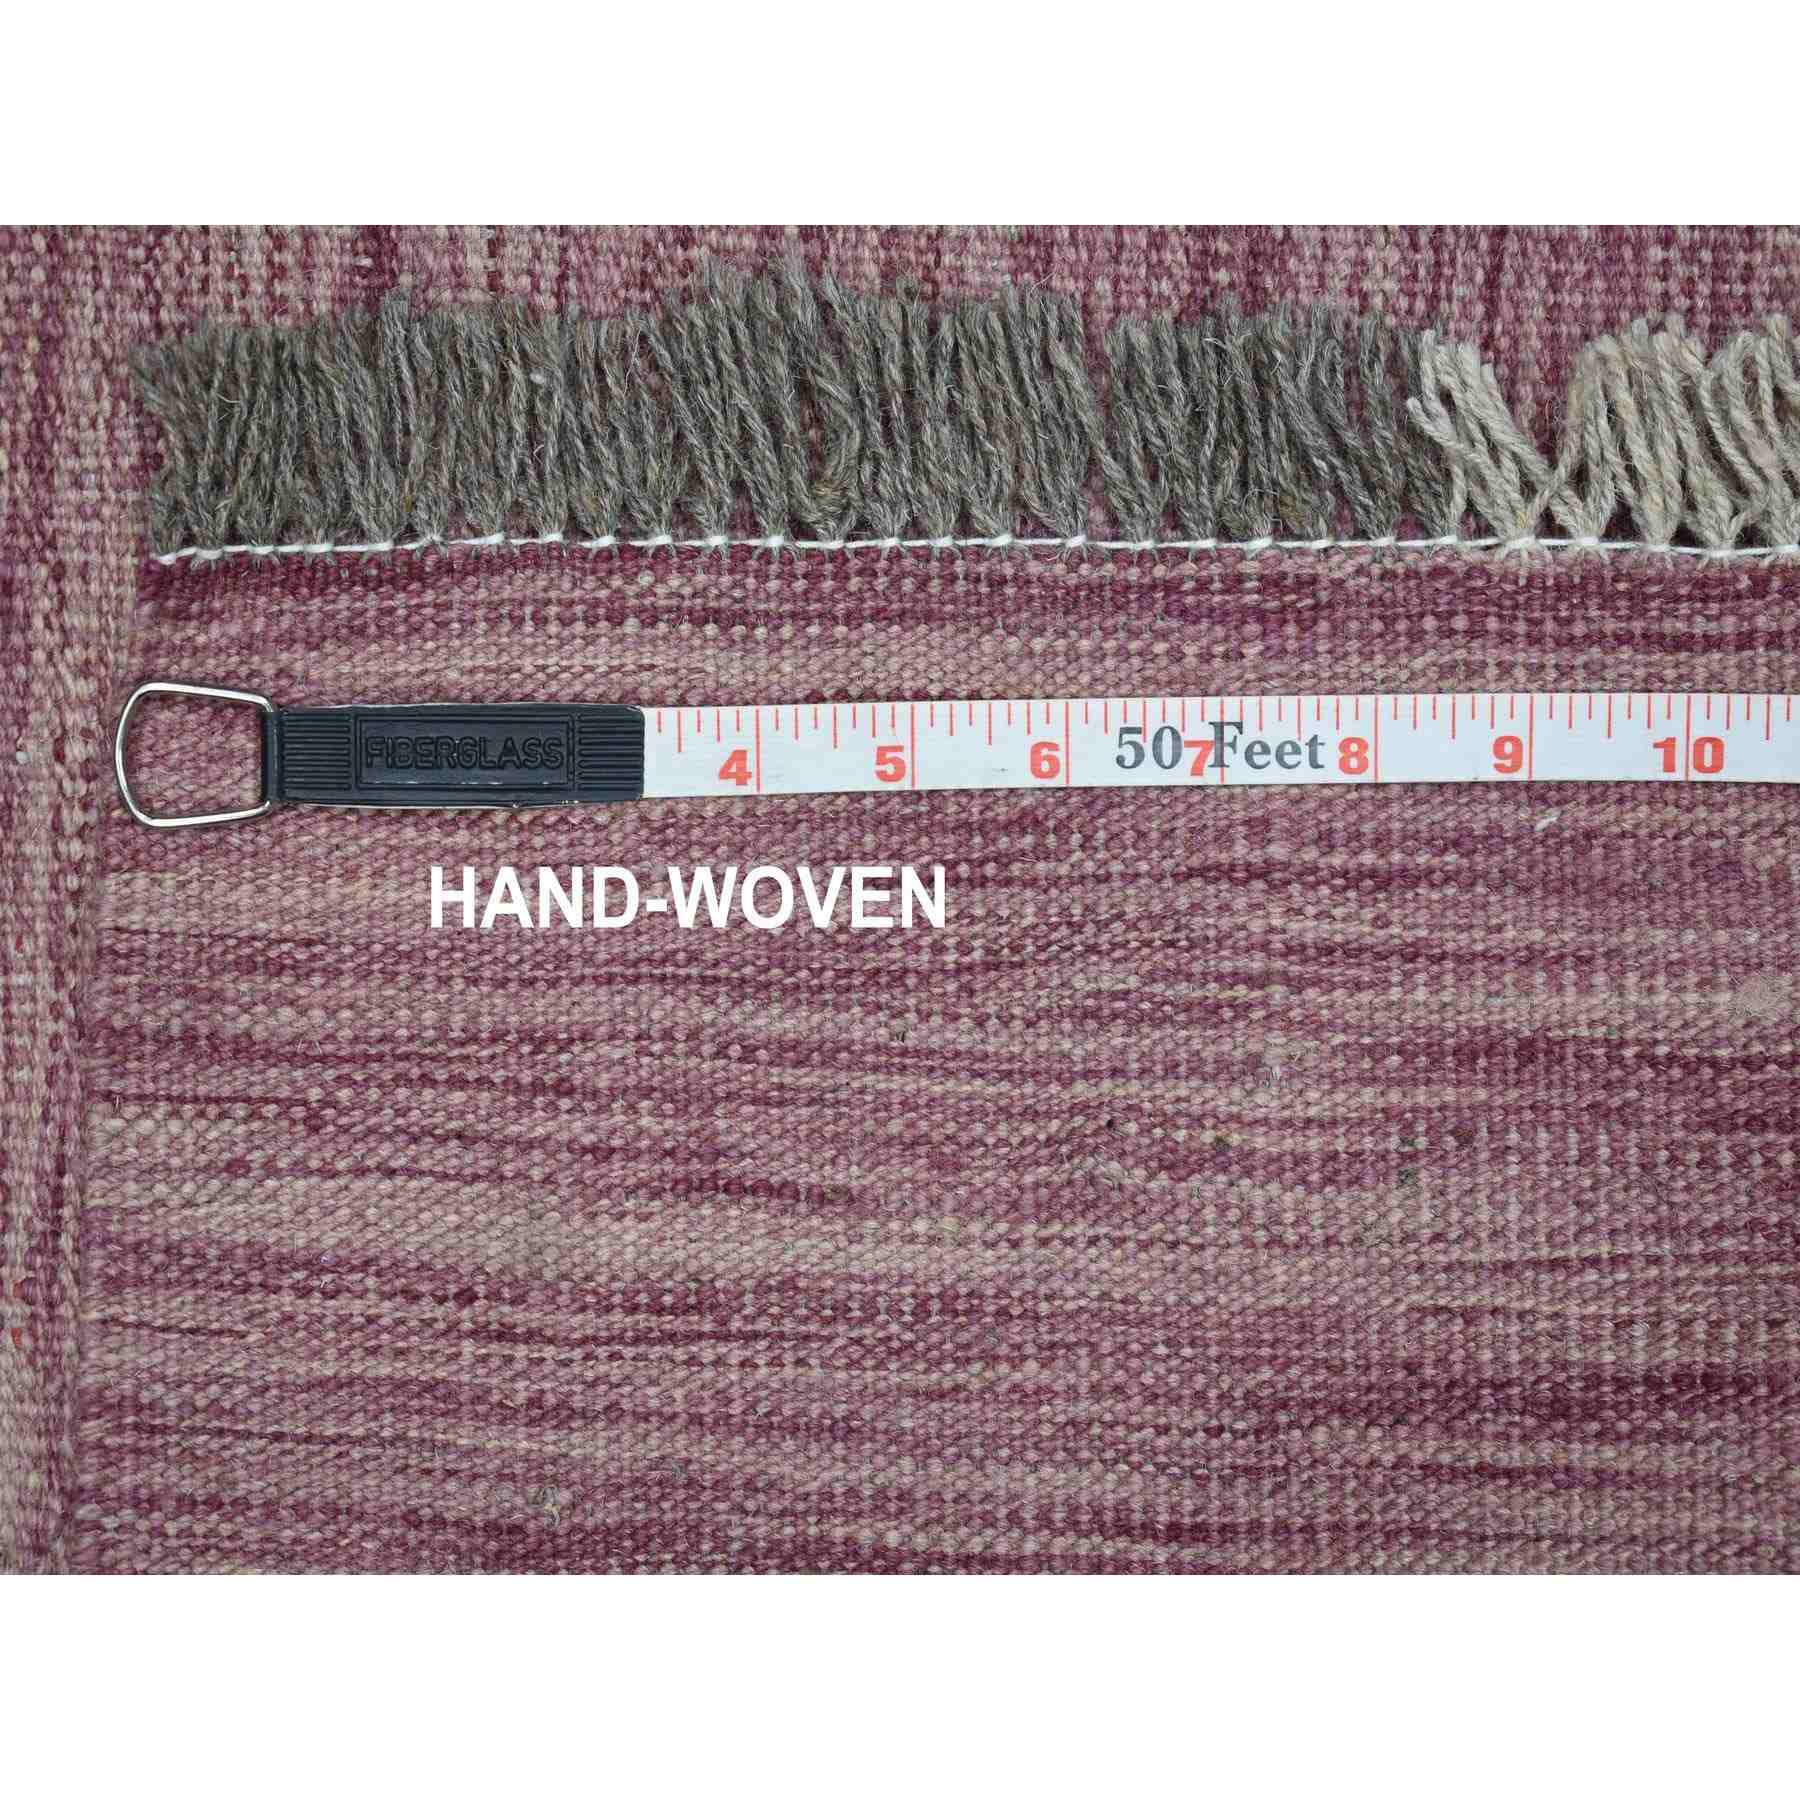 Flat-Weave-Hand-Woven-Rug-271265